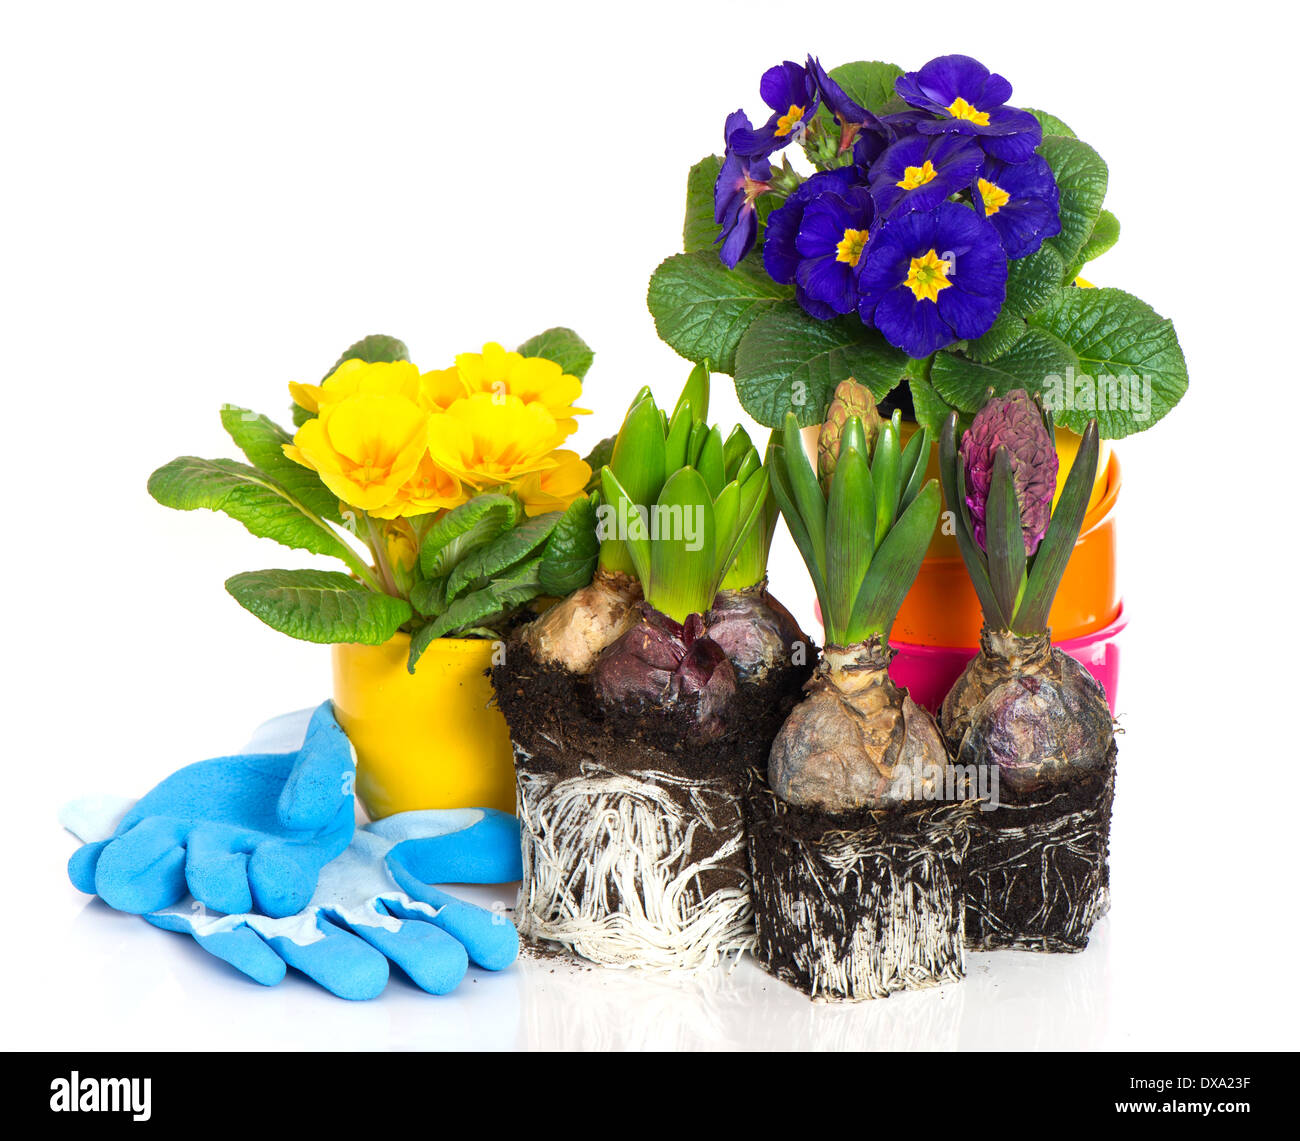 Spring Flowers Hyacinth And Primula On White Background Gardening